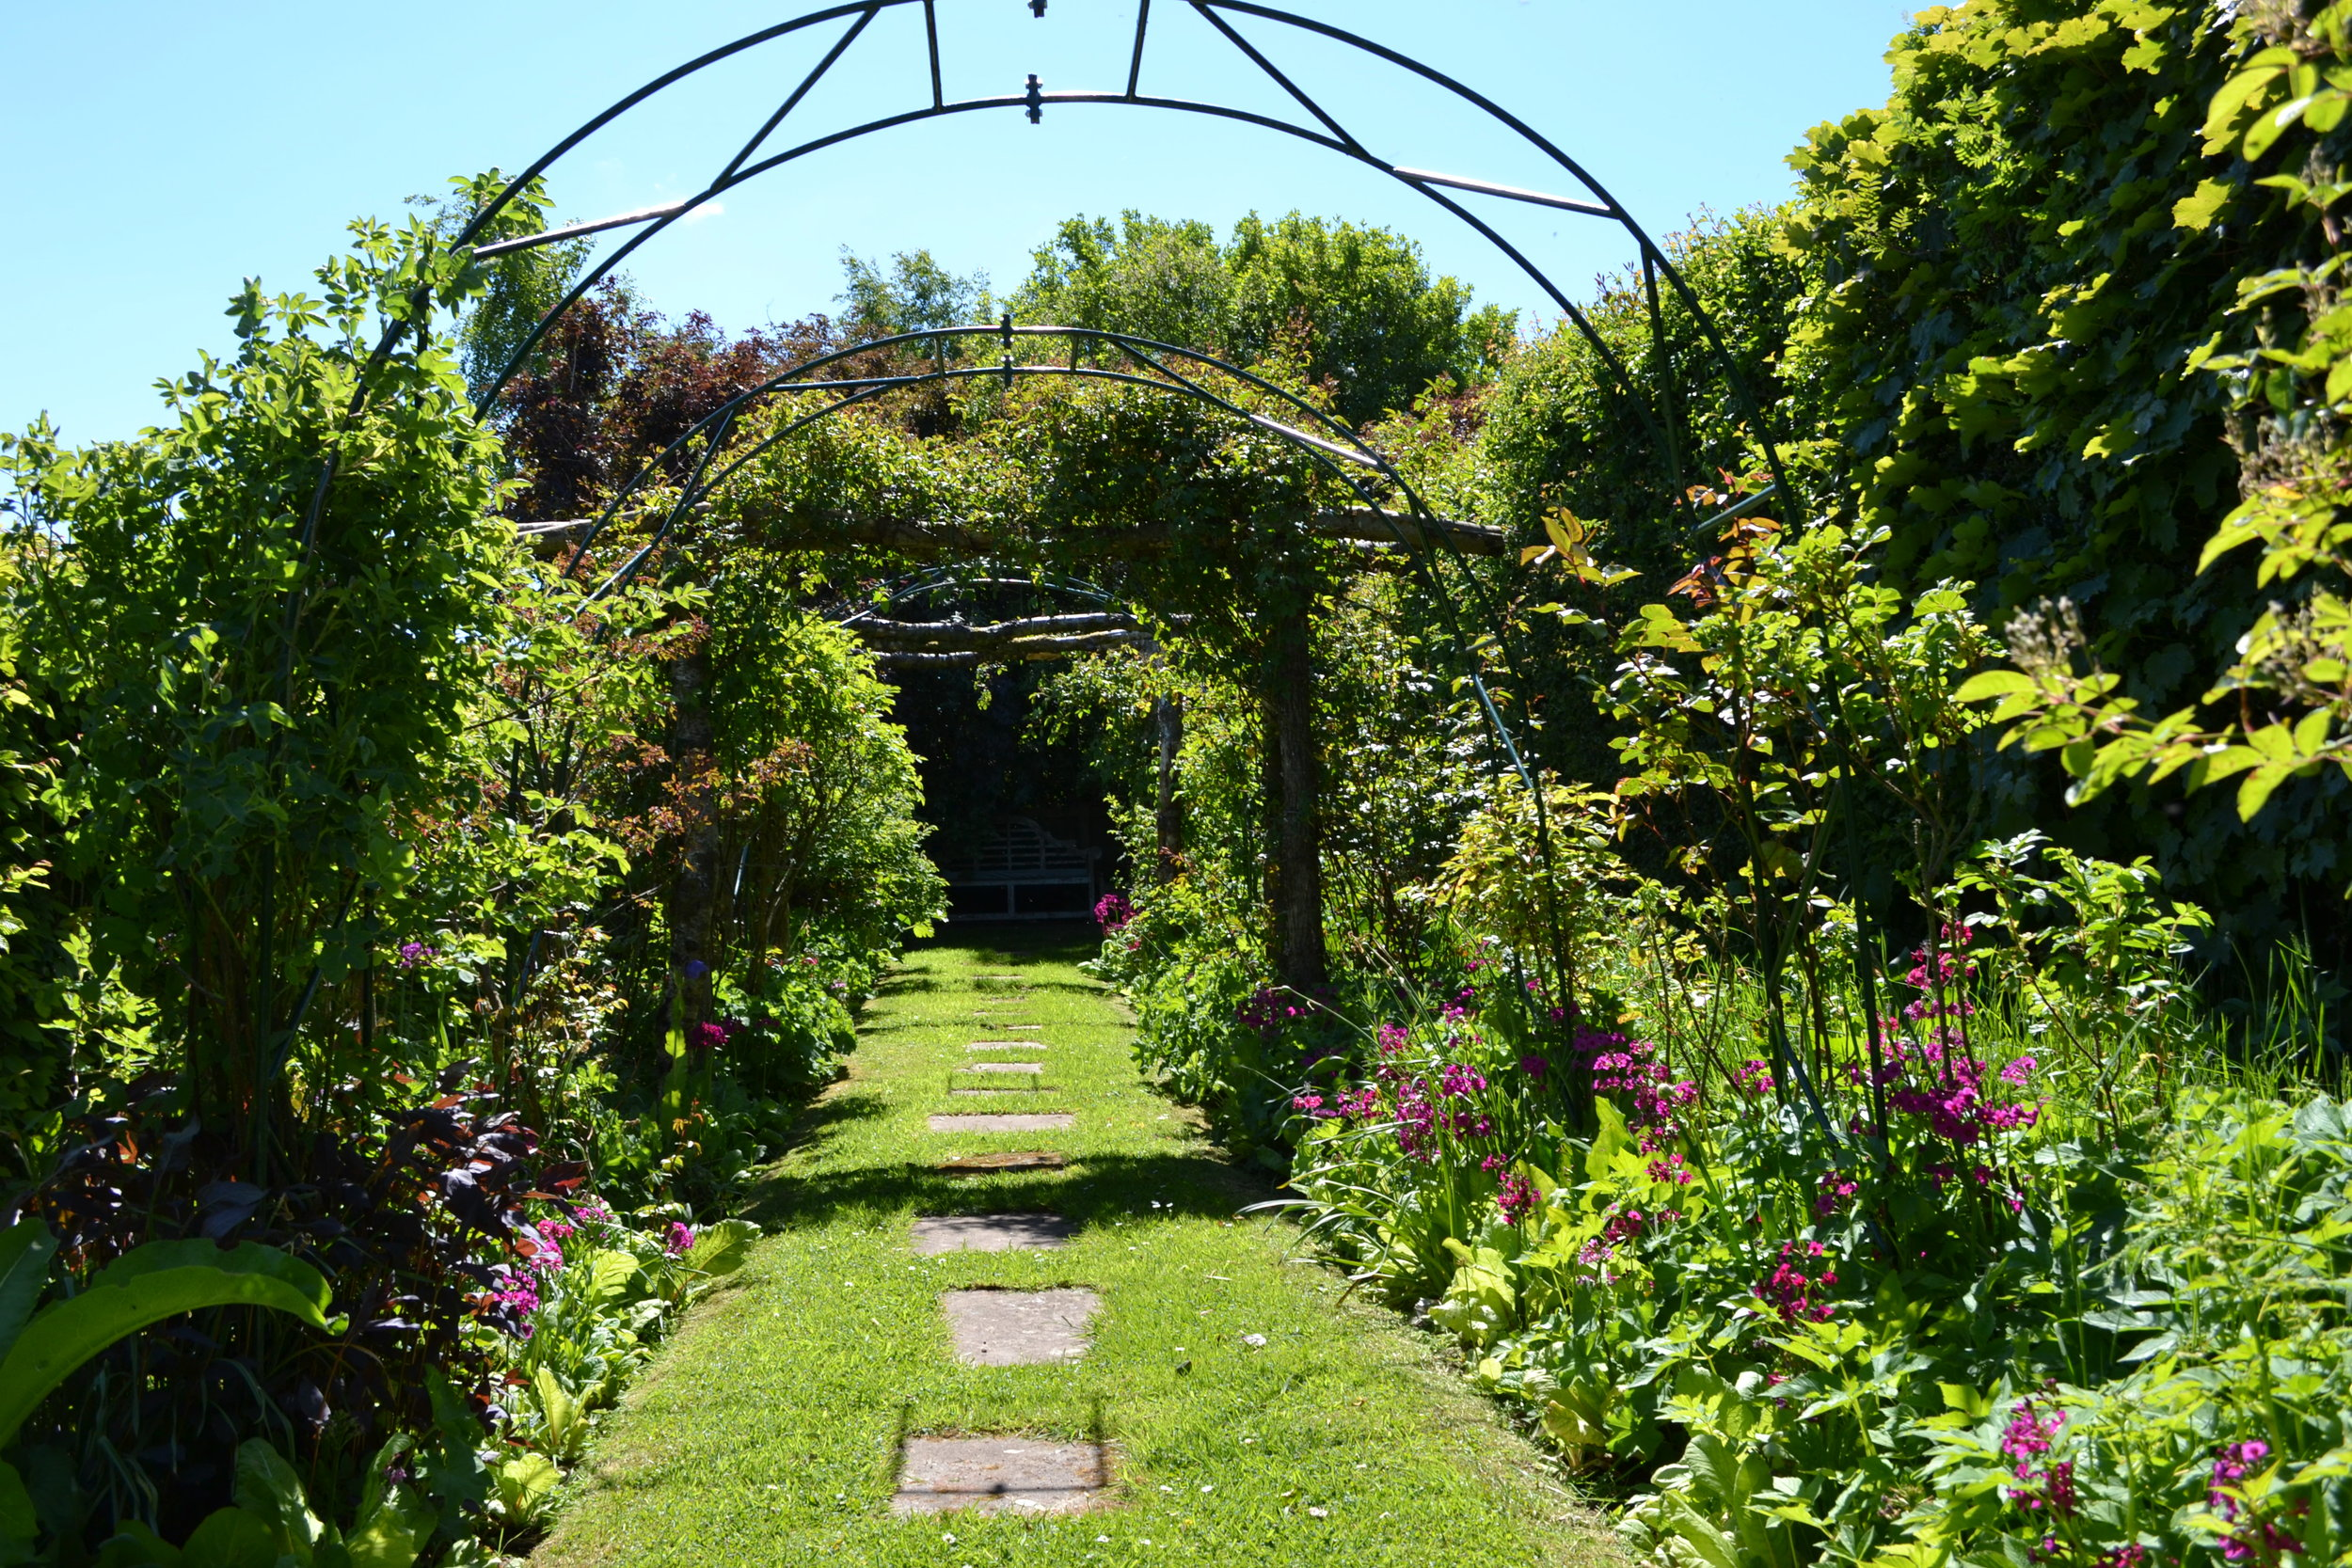 Rose arbour walk - image taken mid-May which is too early for roses to be in bloom in Cumbria